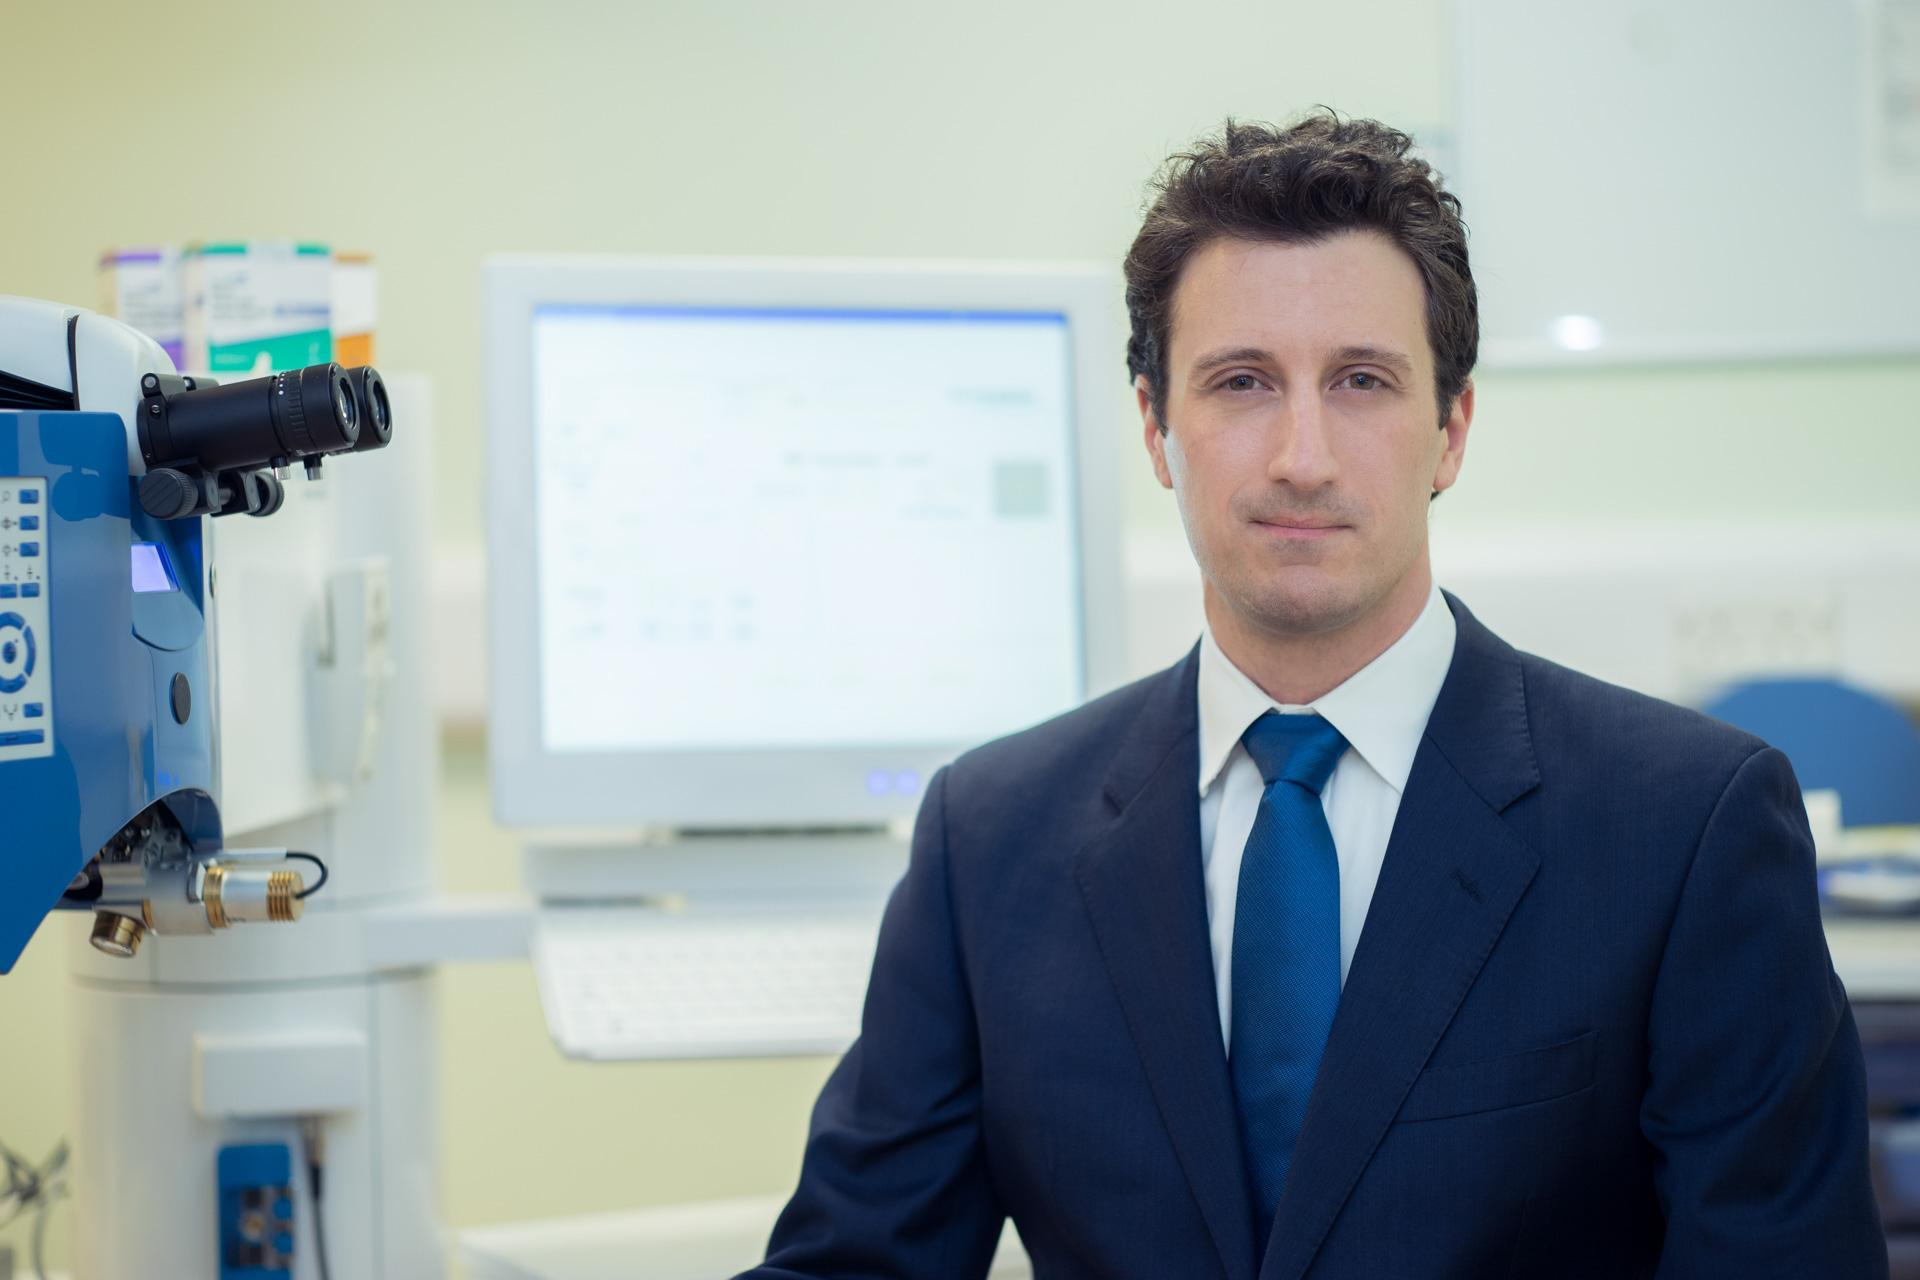 Daniel Gore Ophthalmologist at the laser